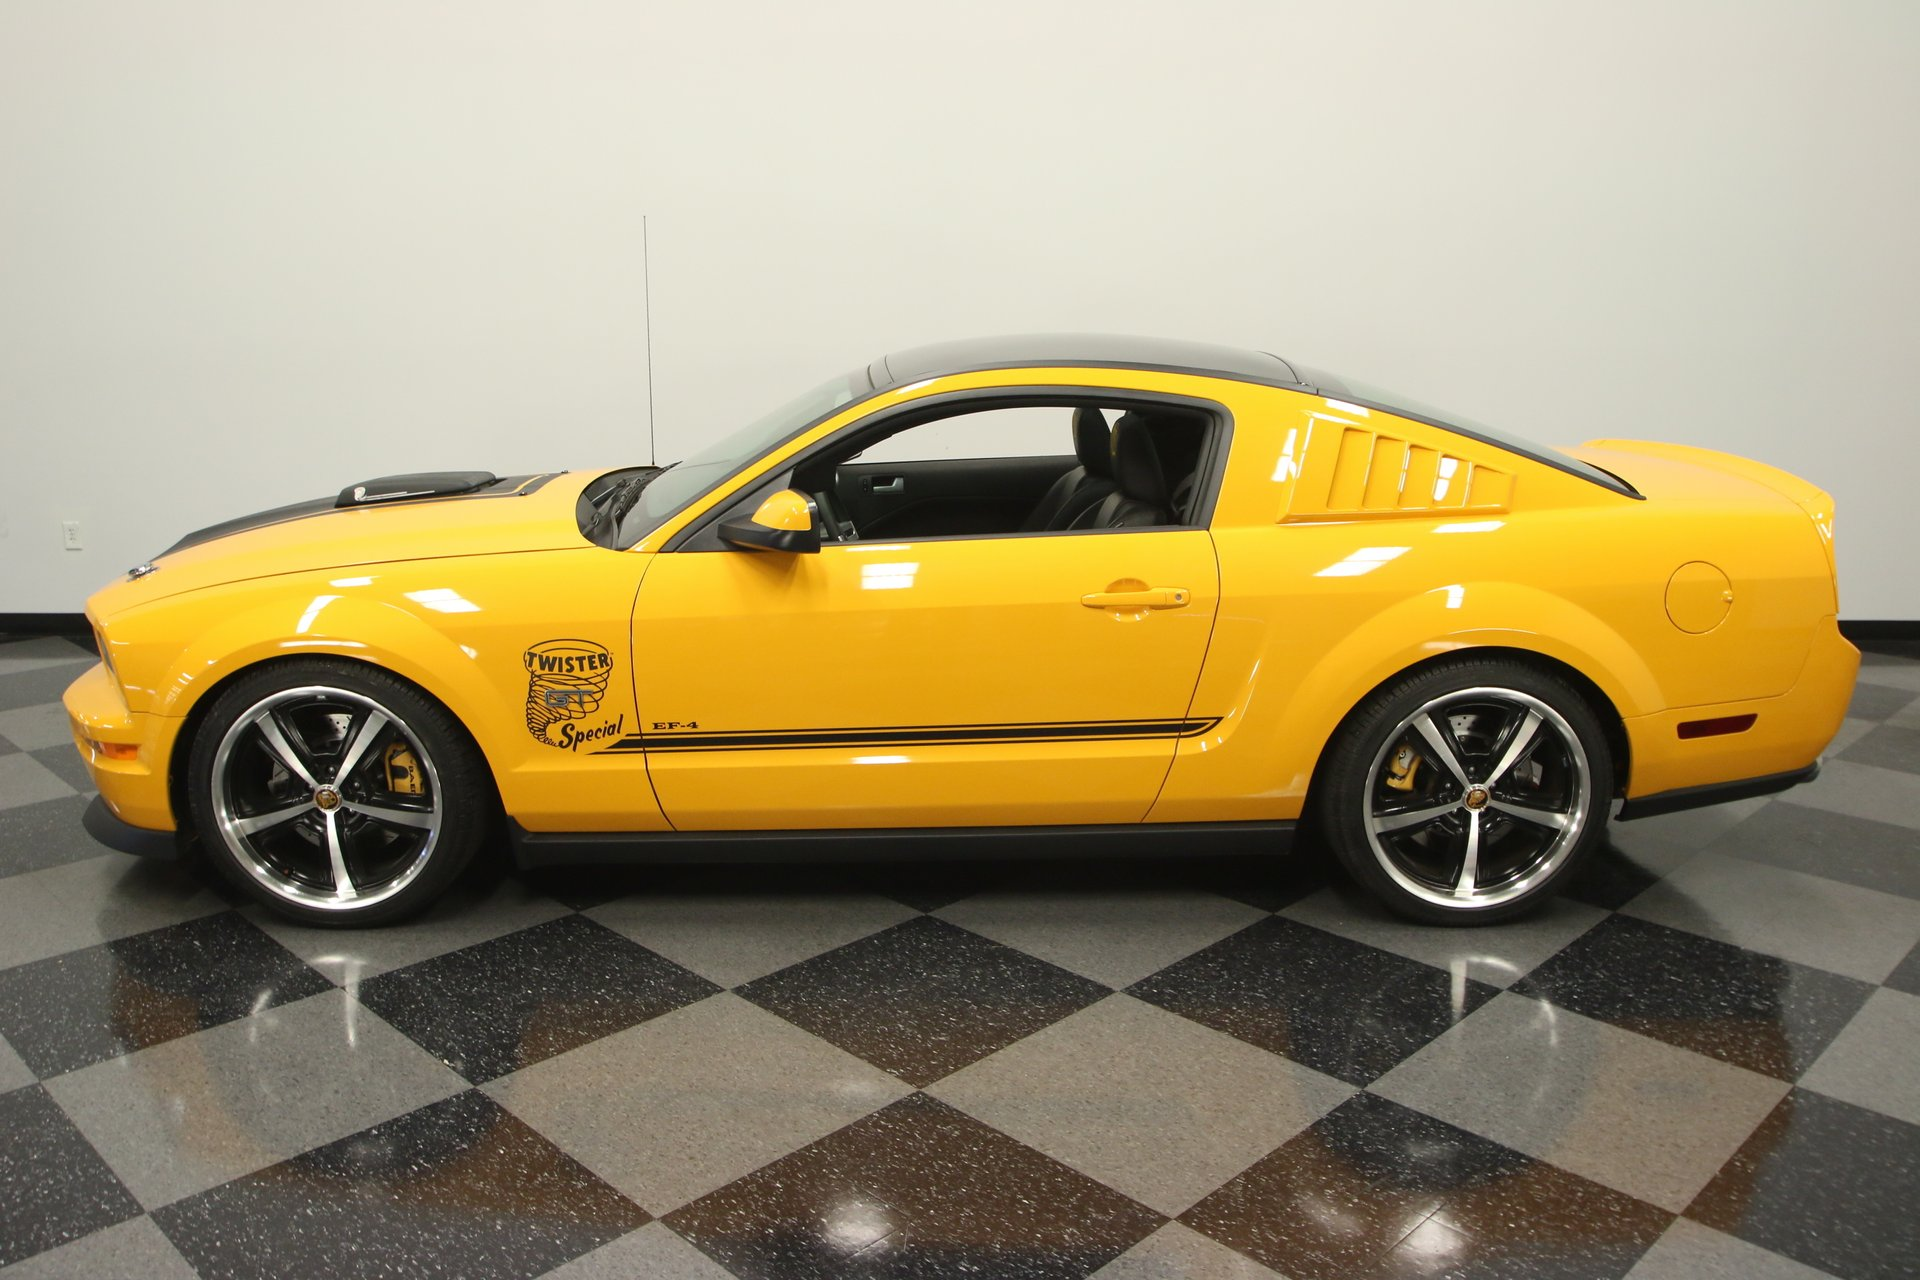 2008 ford mustang twister special ef4